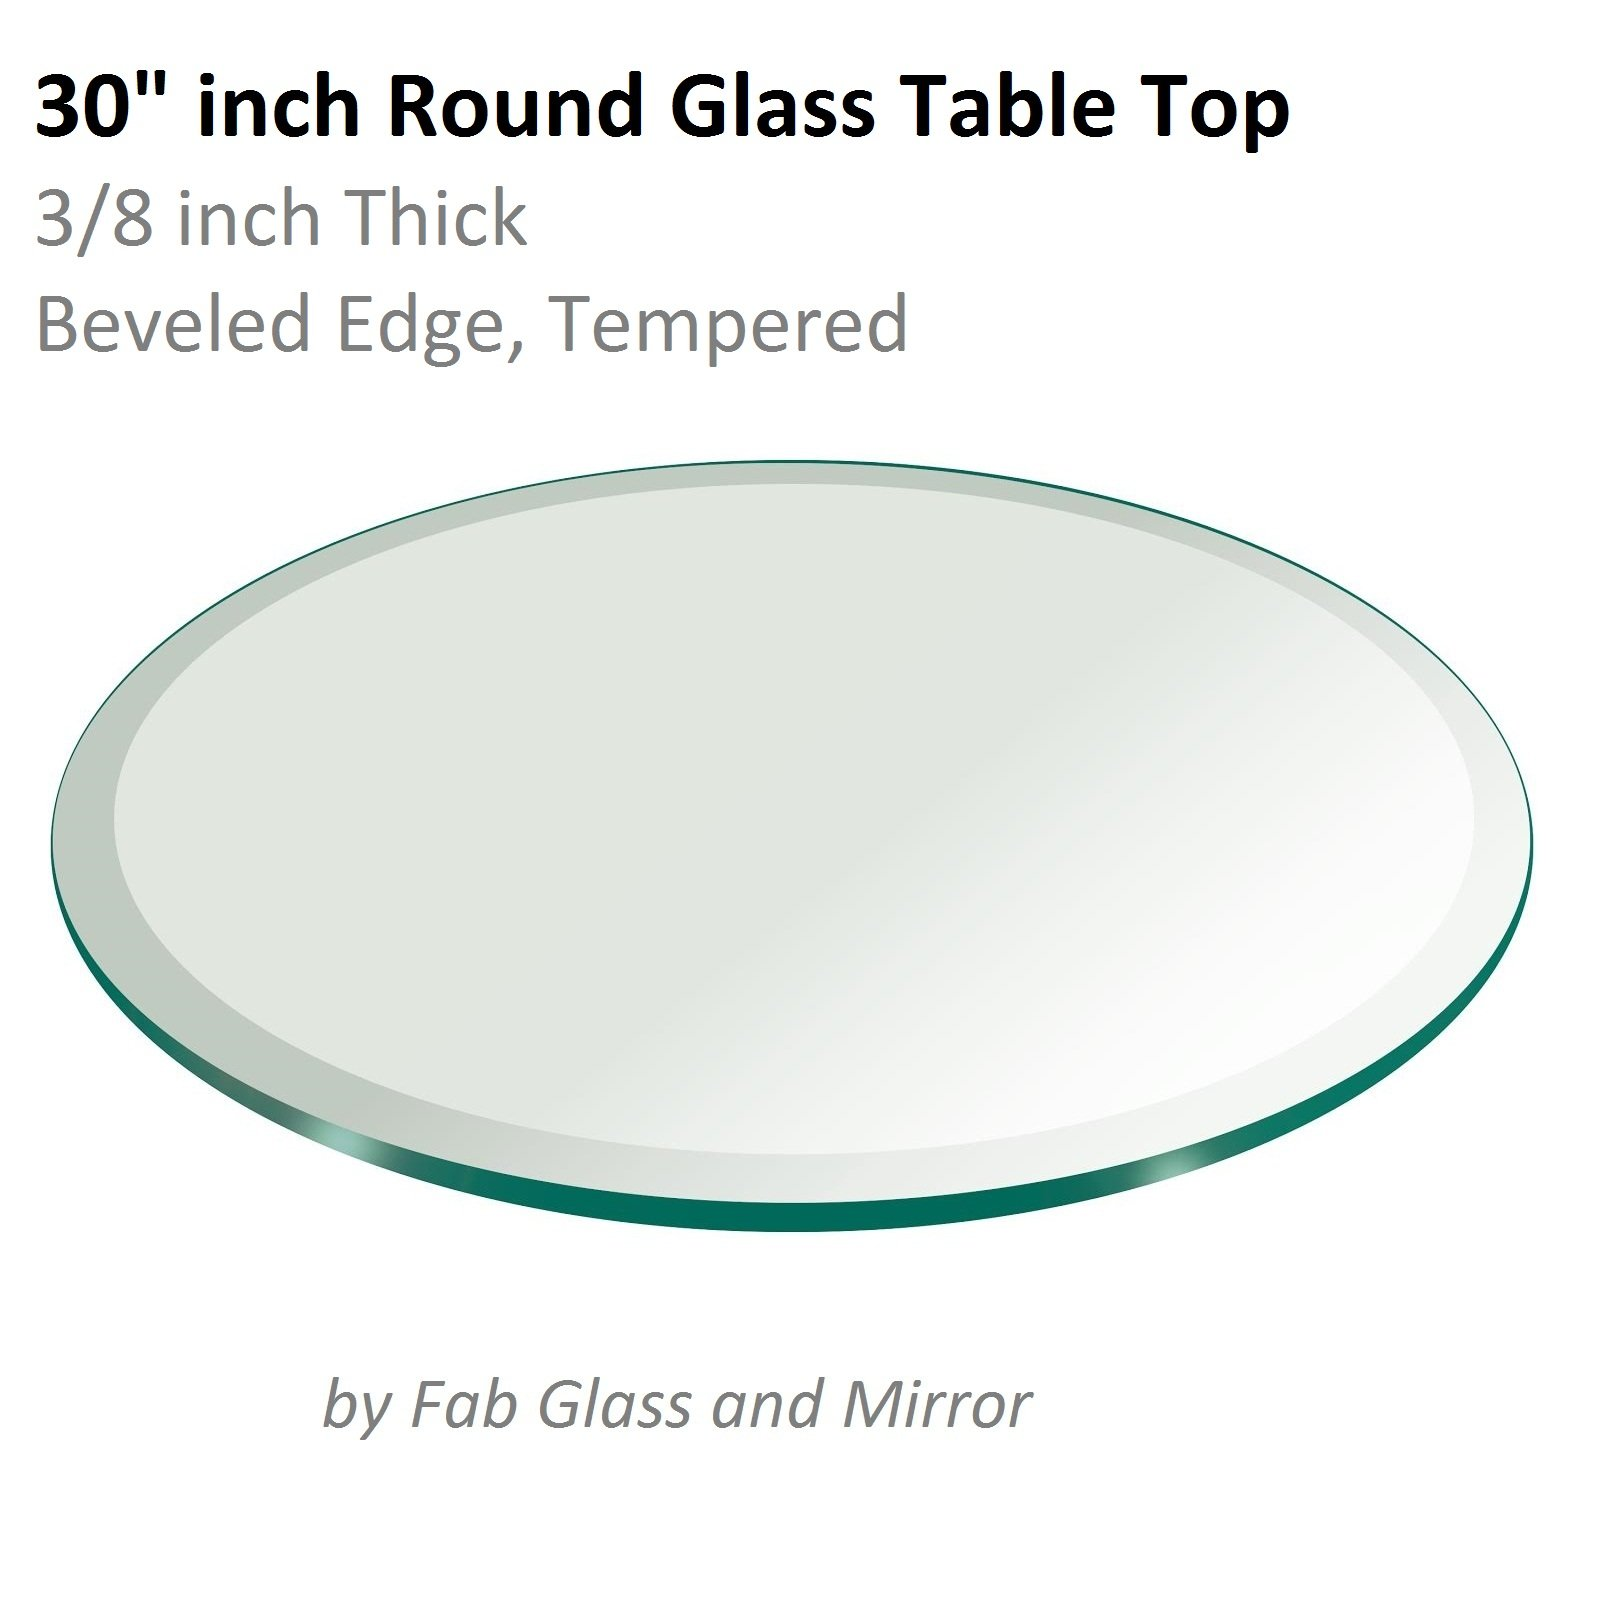 30'' Inch Round Glass Table Top 3/8'' Thick Tempered Beveled Edge by Fab Glass and Mirror